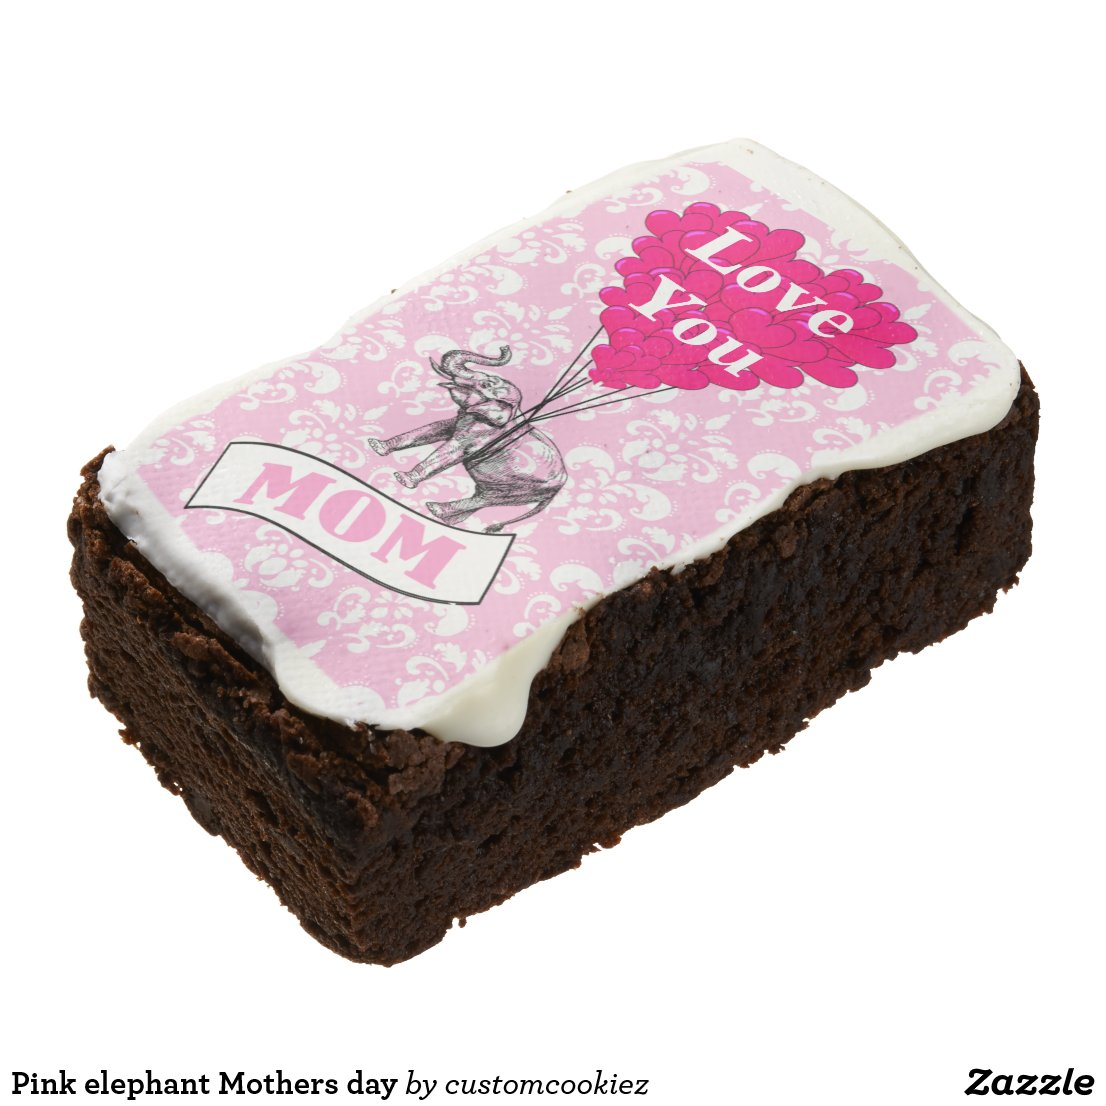 Pink elephant Mothers day Brownie